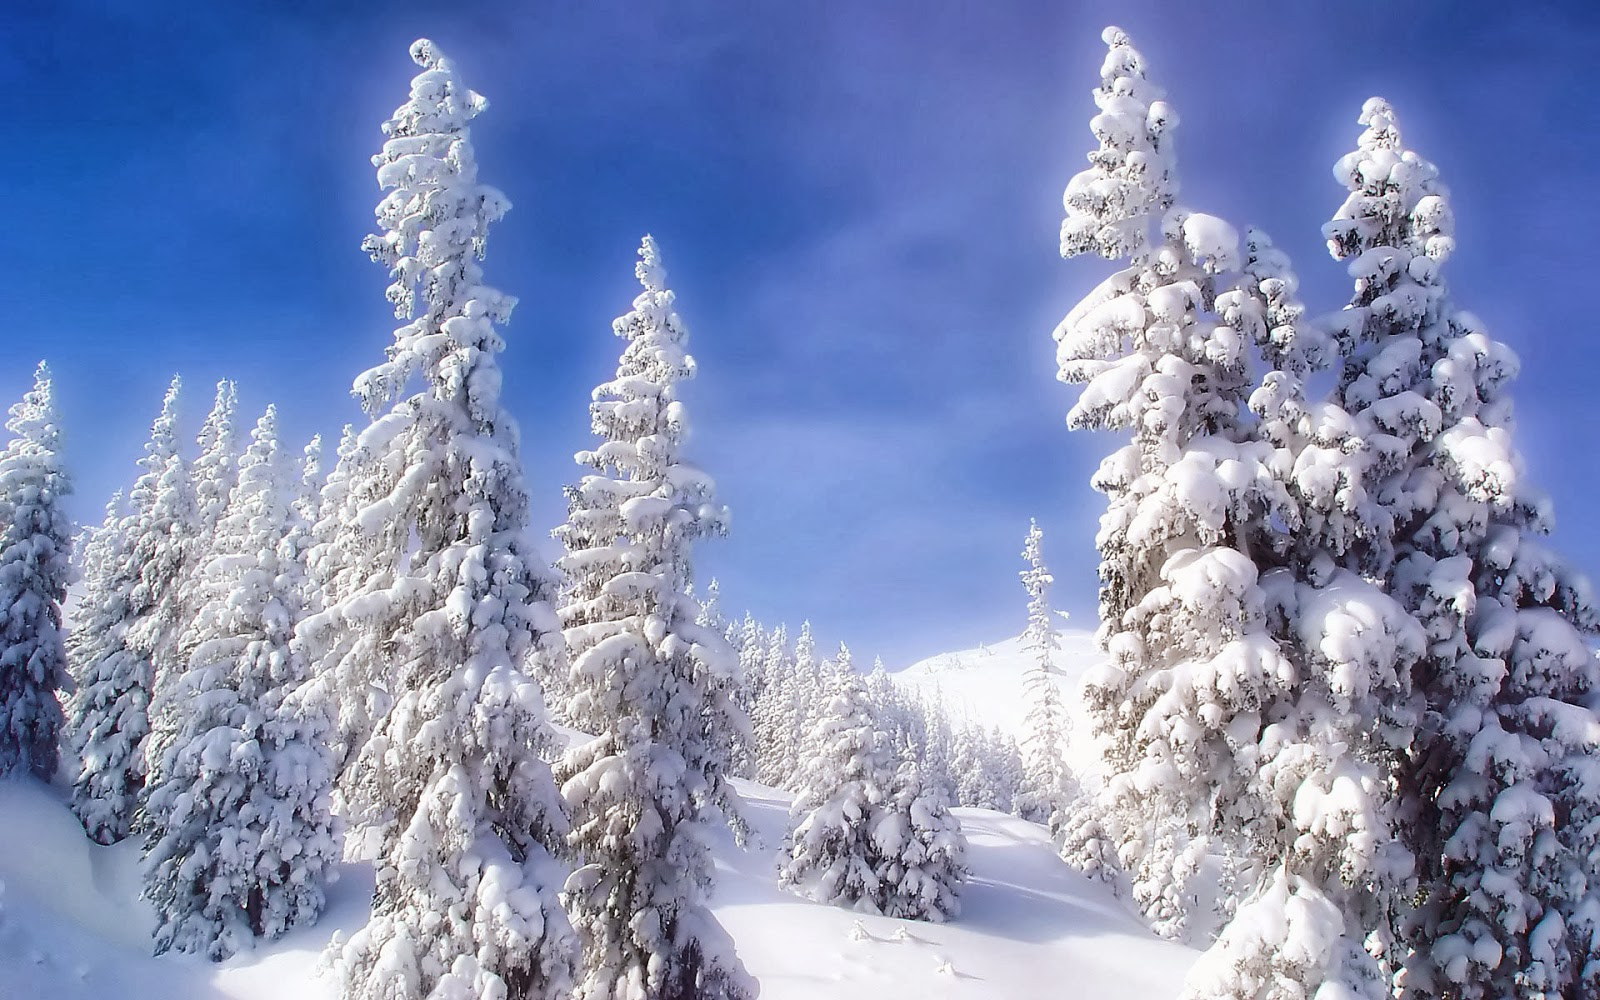 Snow Fall Winter HD Wallpapers   HD Wallpapers Blog 1600x1000